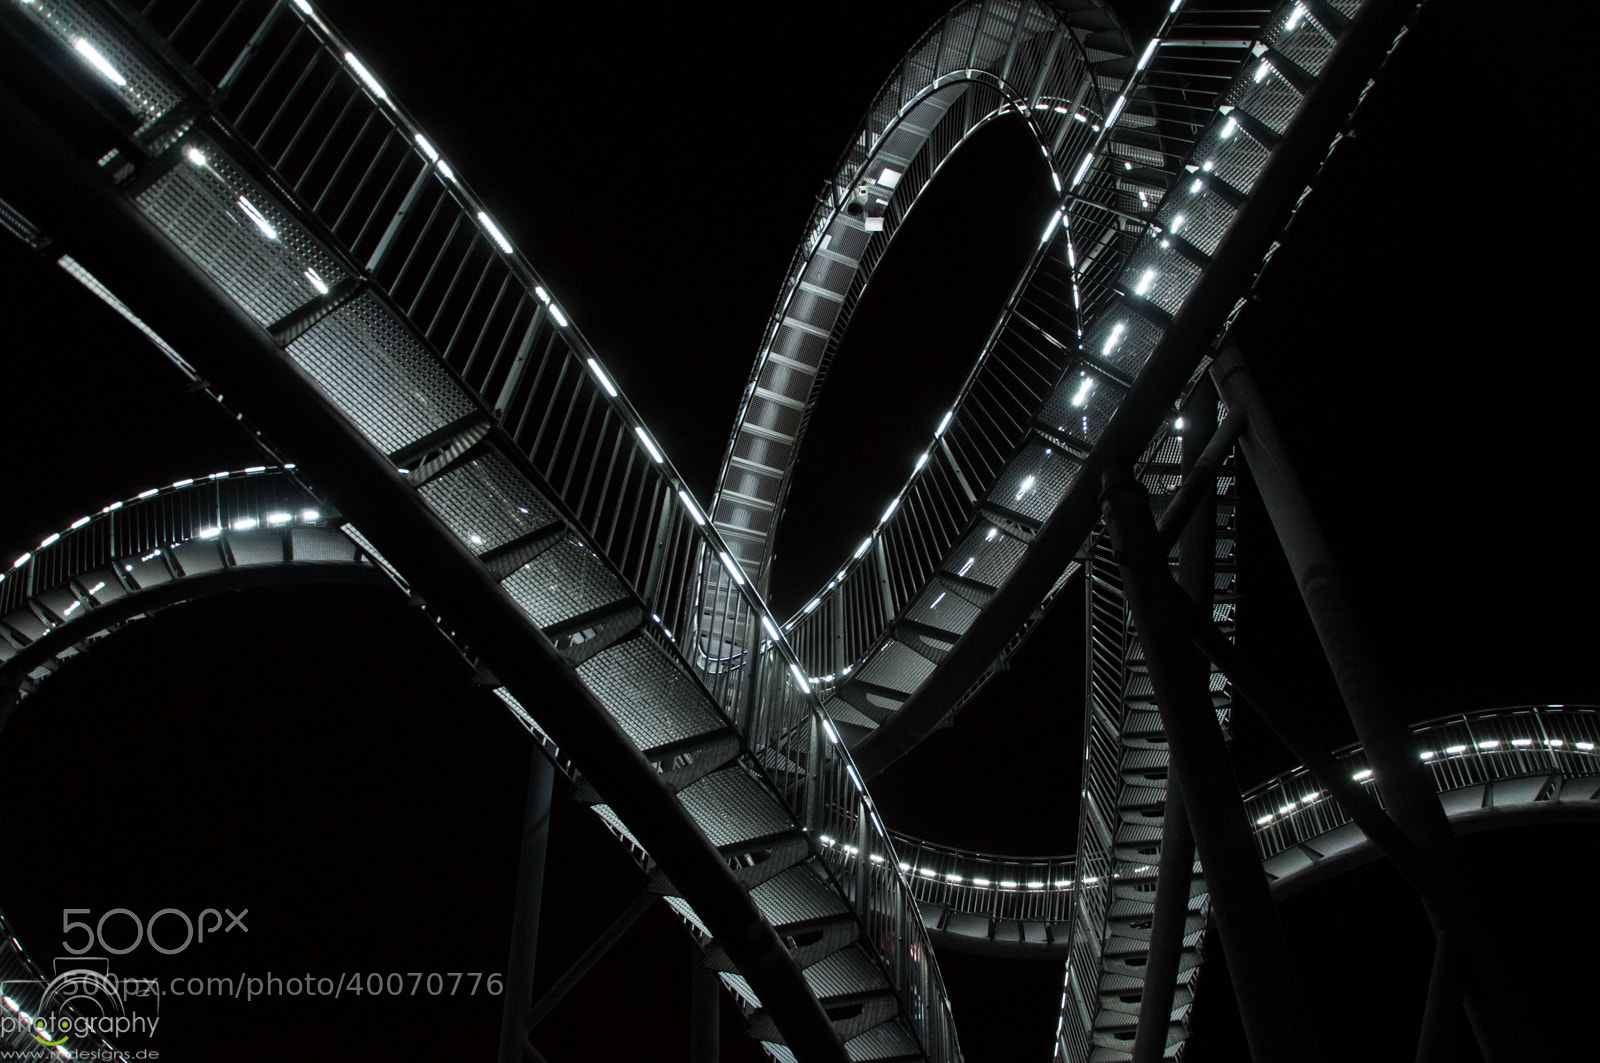 Photograph Tiger & Turtle II by Sascha Niklas on 500px